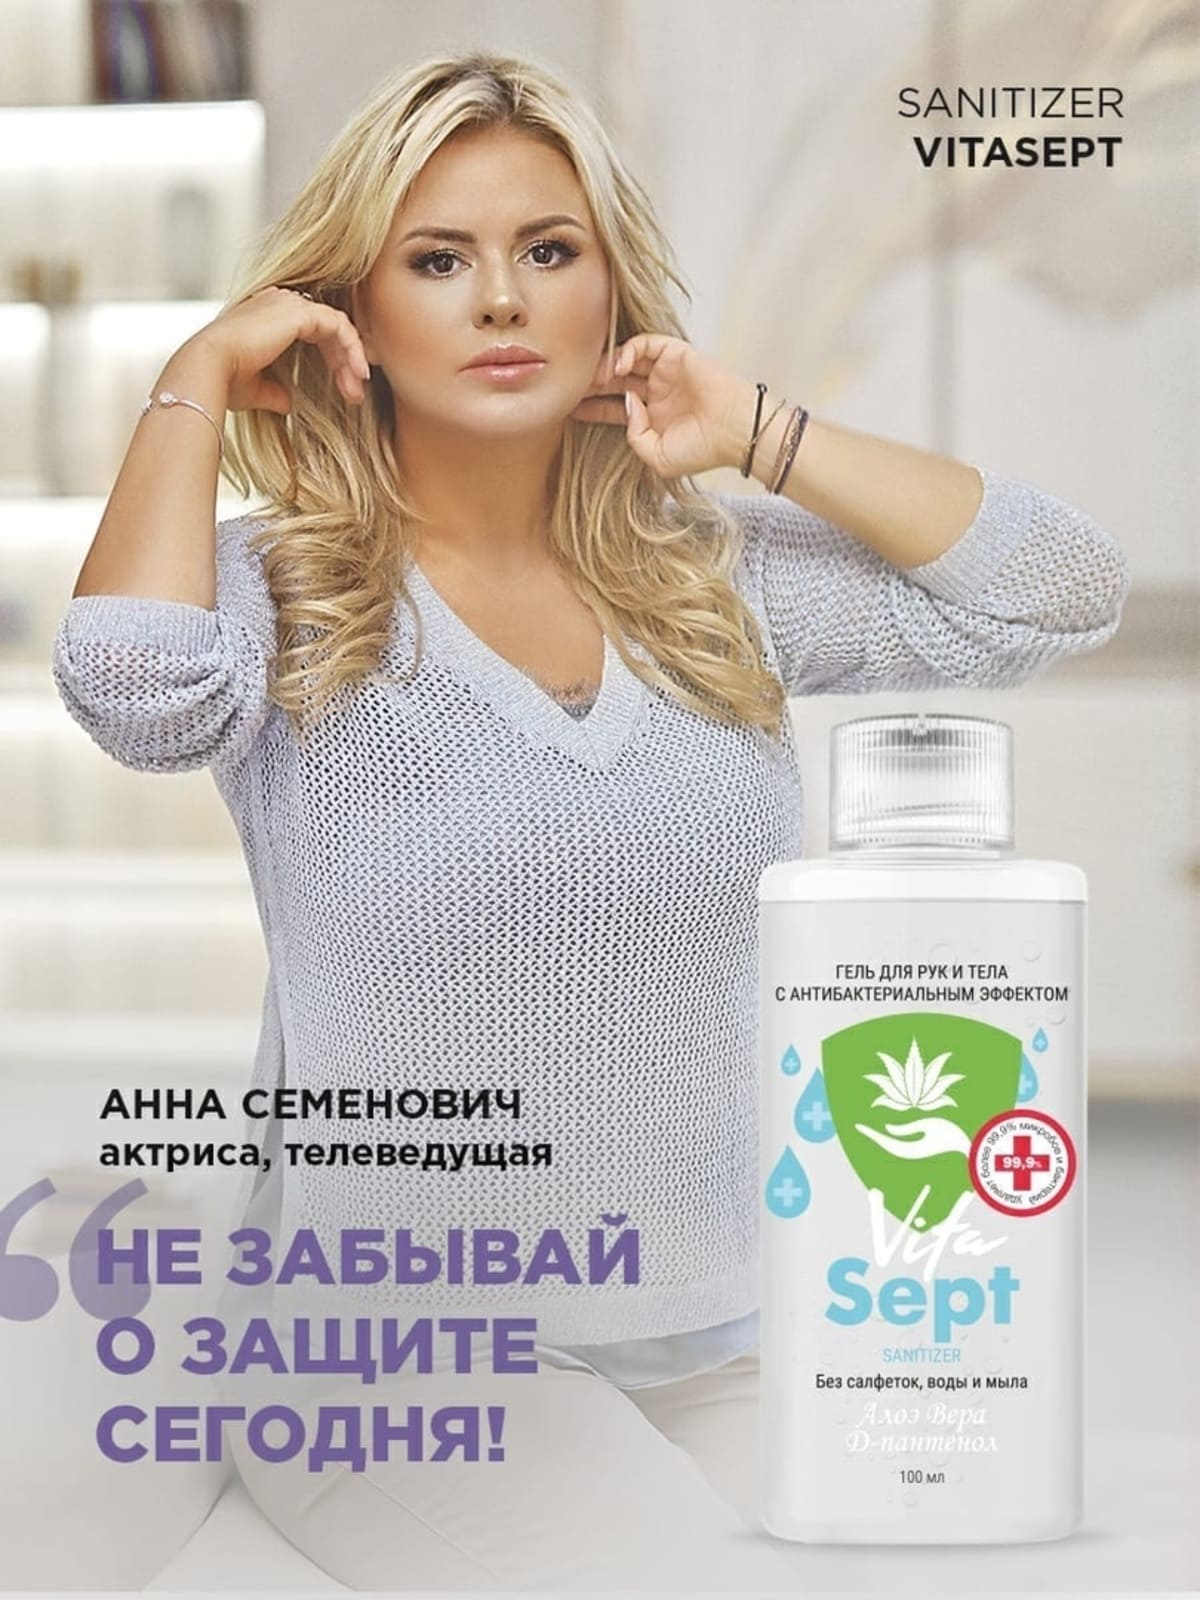 VitaSept Sanitizer